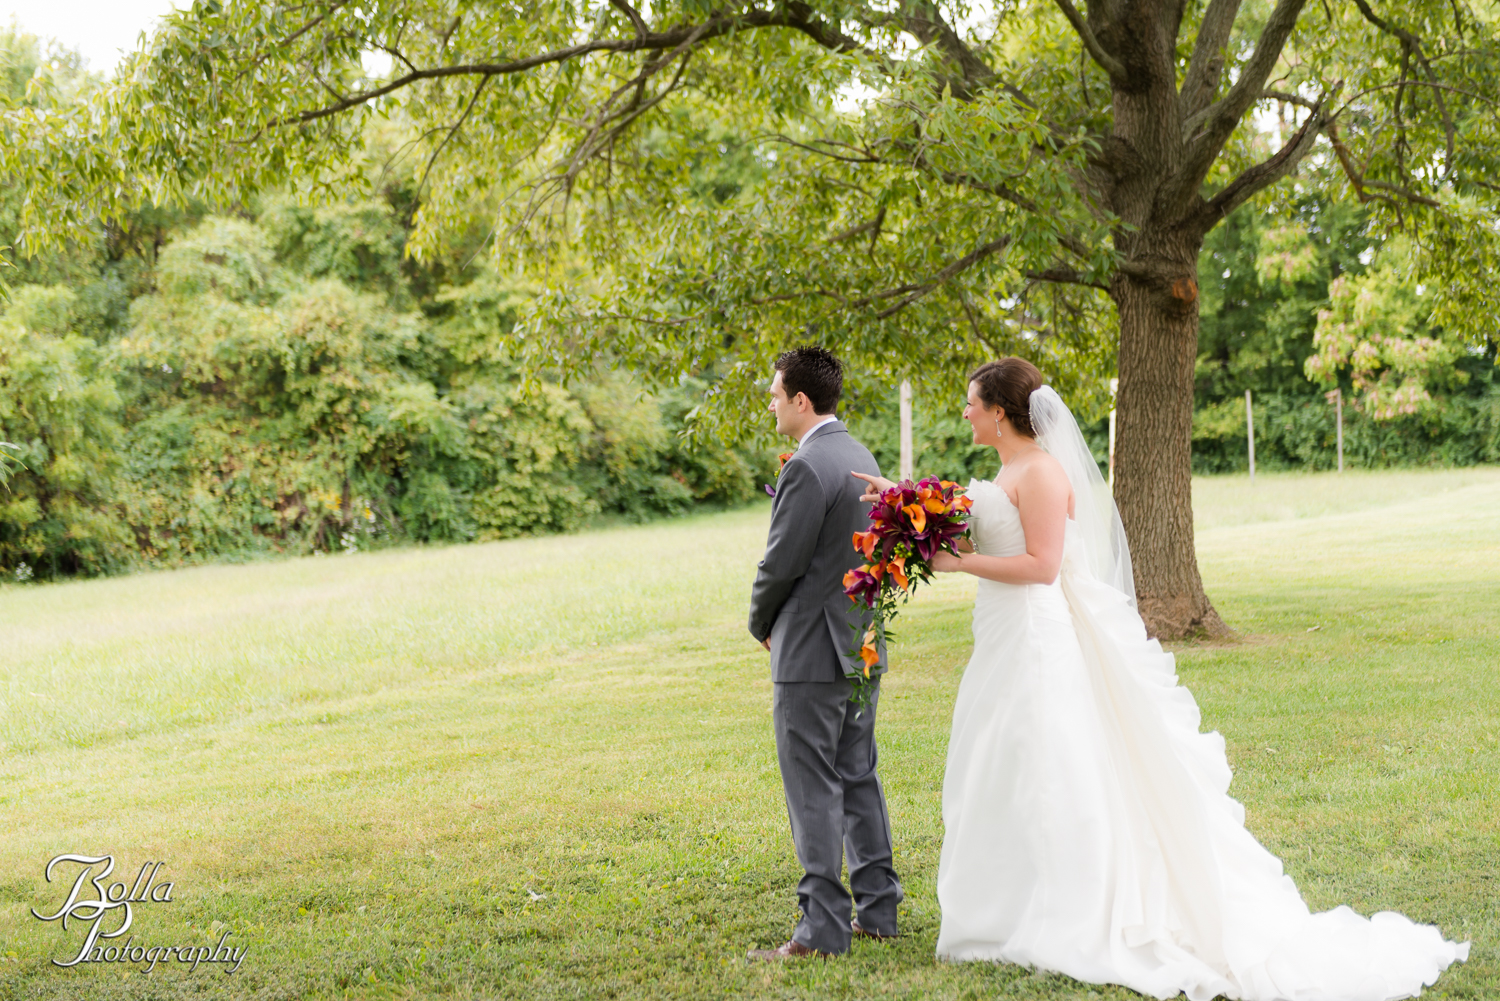 Bolla_Photography_St_Louis_wedding_photographer-0071.jpg